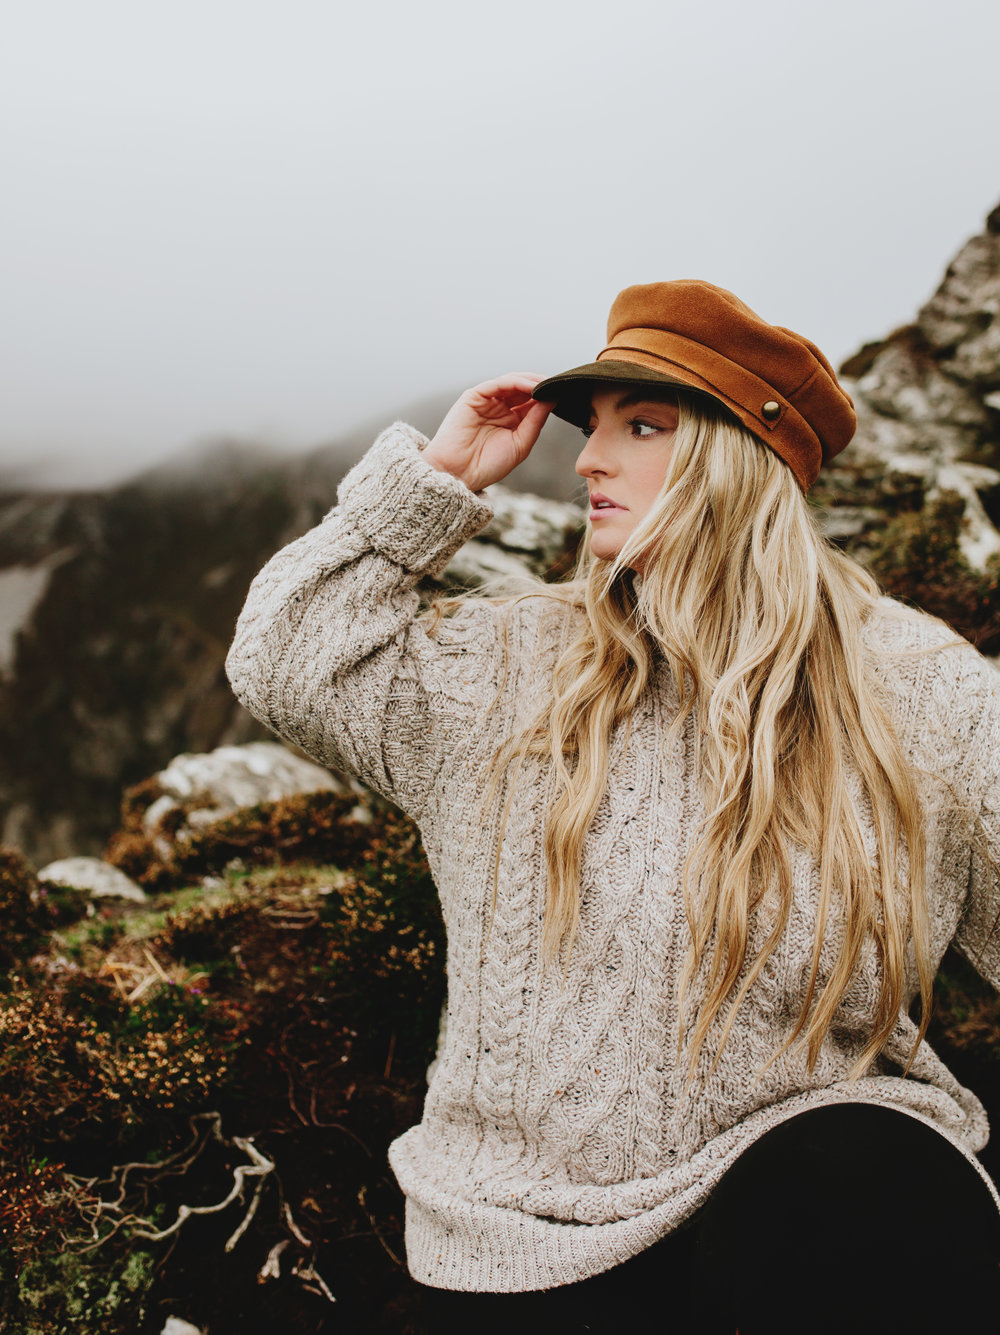 Fall, Fall sweaters, Ireland, travel, travel Ireland, Fall fashion, Irish sweaters, adventure, Lack of color, europe travel, Europe vacation